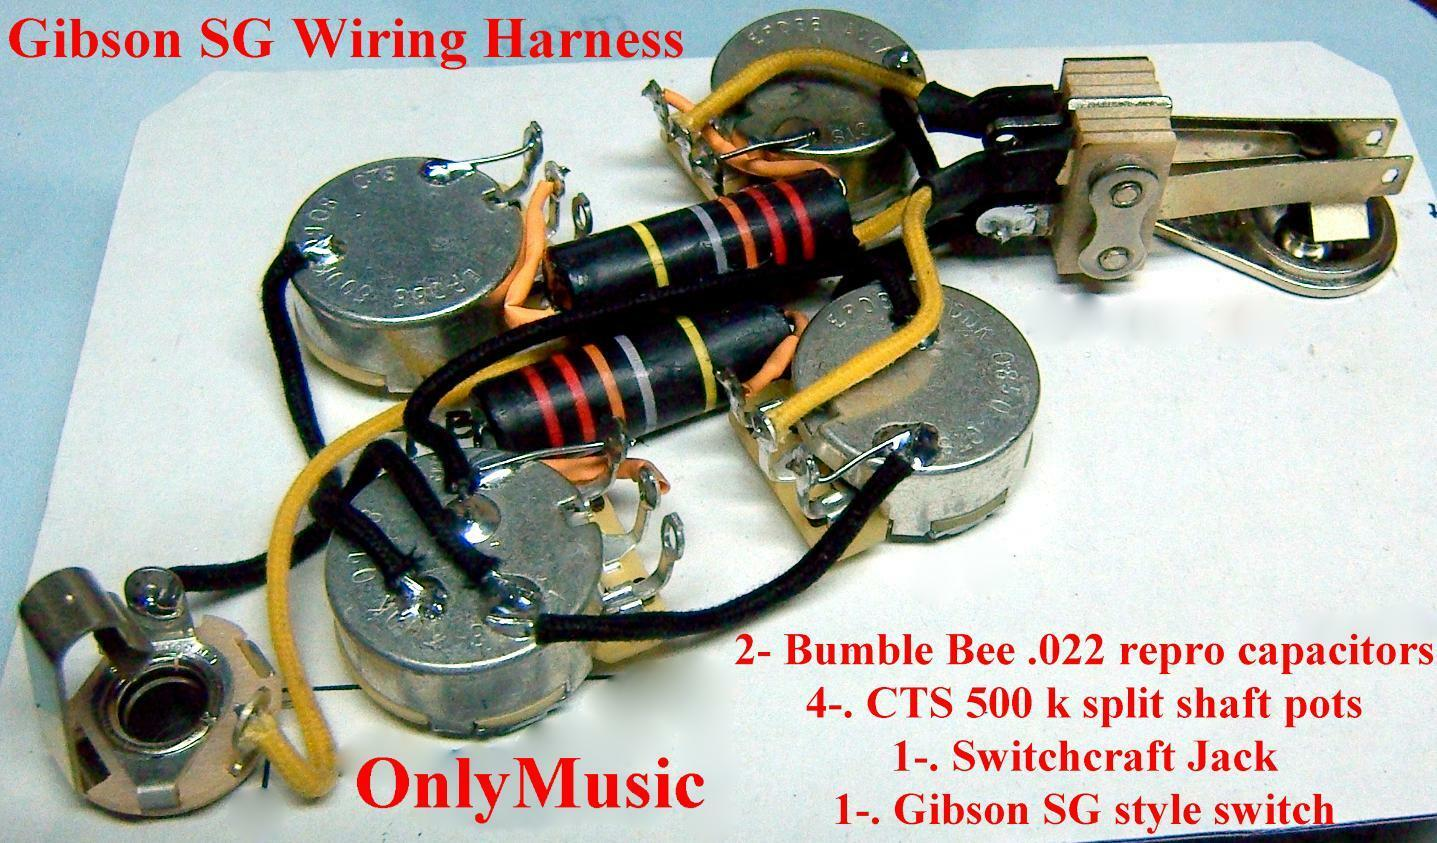 COMPATIBLE WITH GIBSON SG BUMBLE BEE REPRO VINTAGE WIRING HARNESS & SWITCH